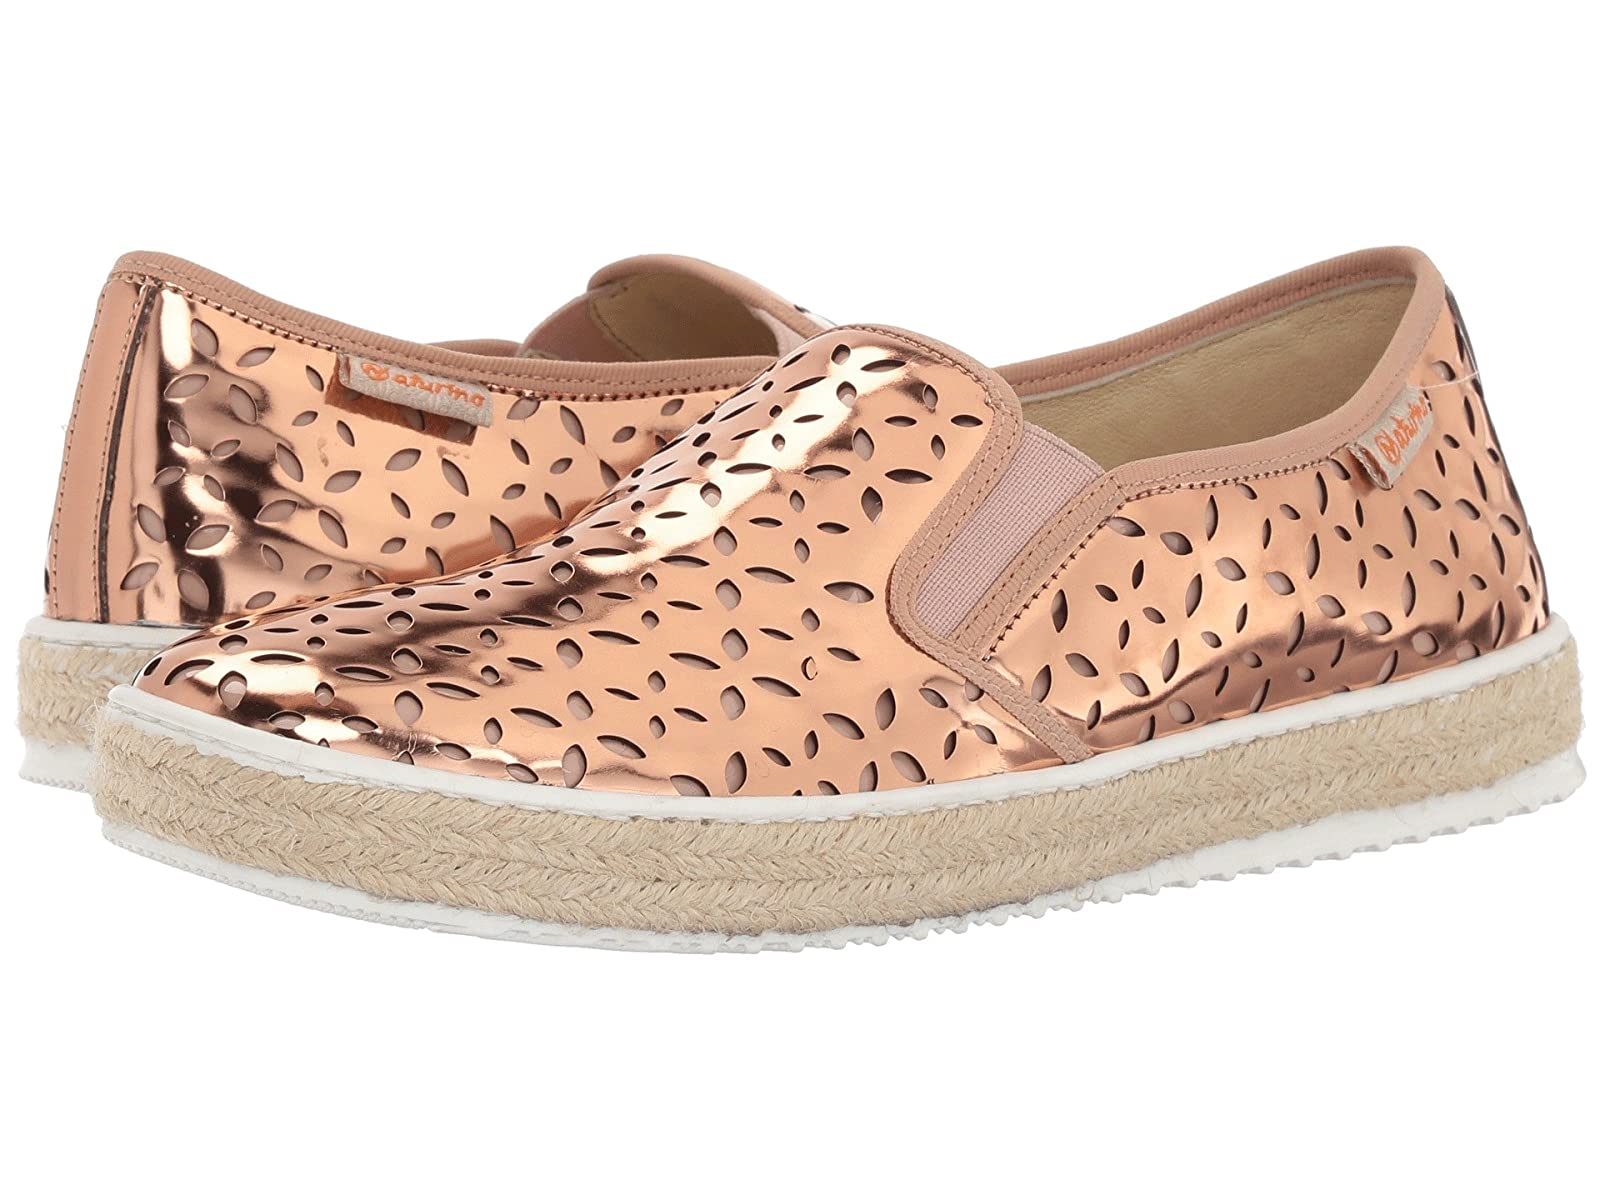 Naturino 5024 SS18 (Toddler/Little Kid/Big Kid)Cheap and distinctive eye-catching shoes